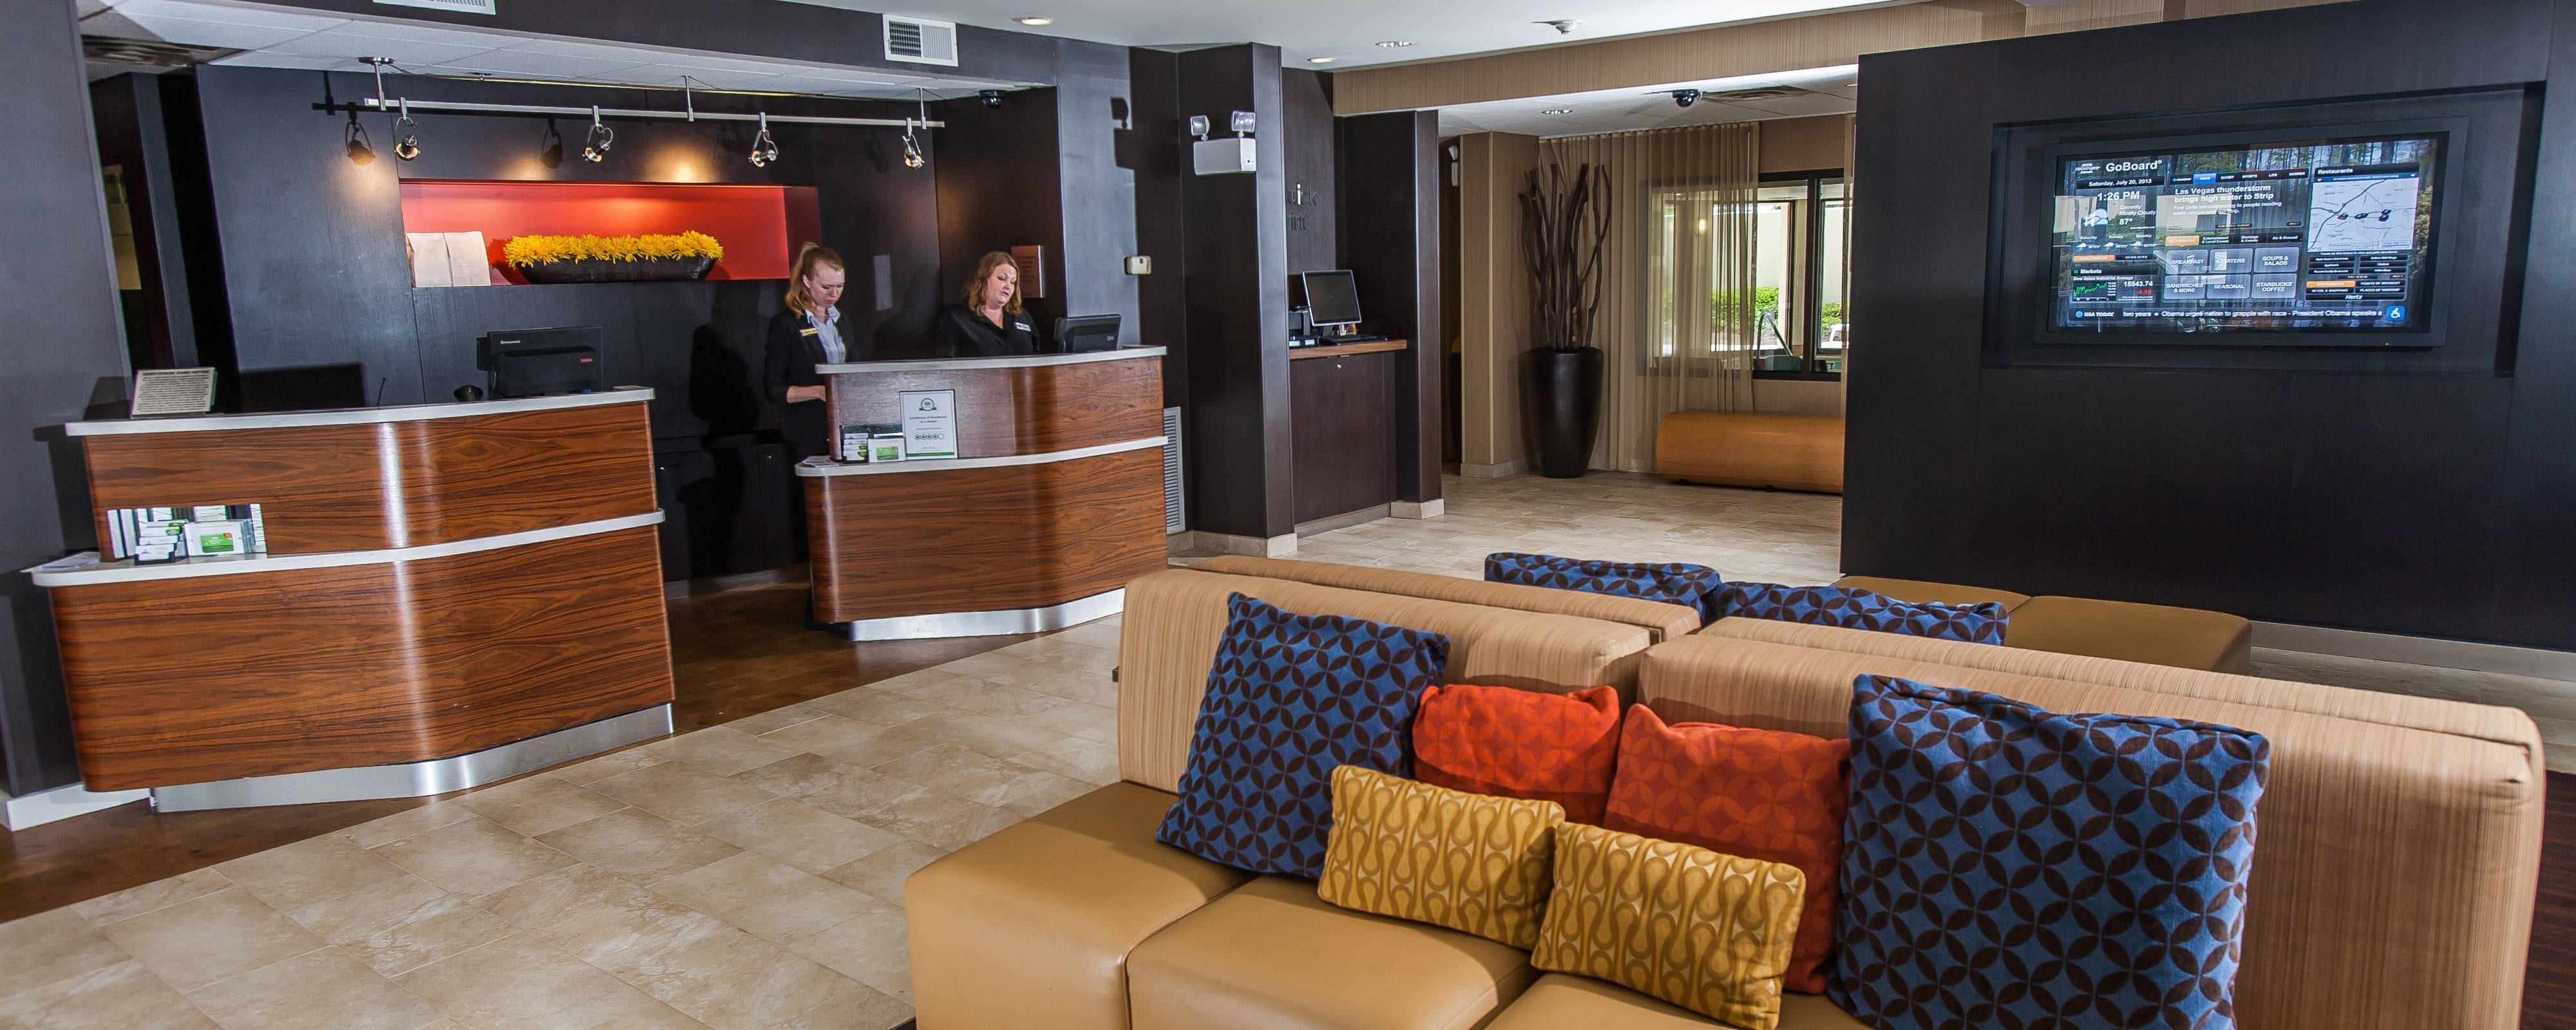 Courtyard Marriott Florence Lobby